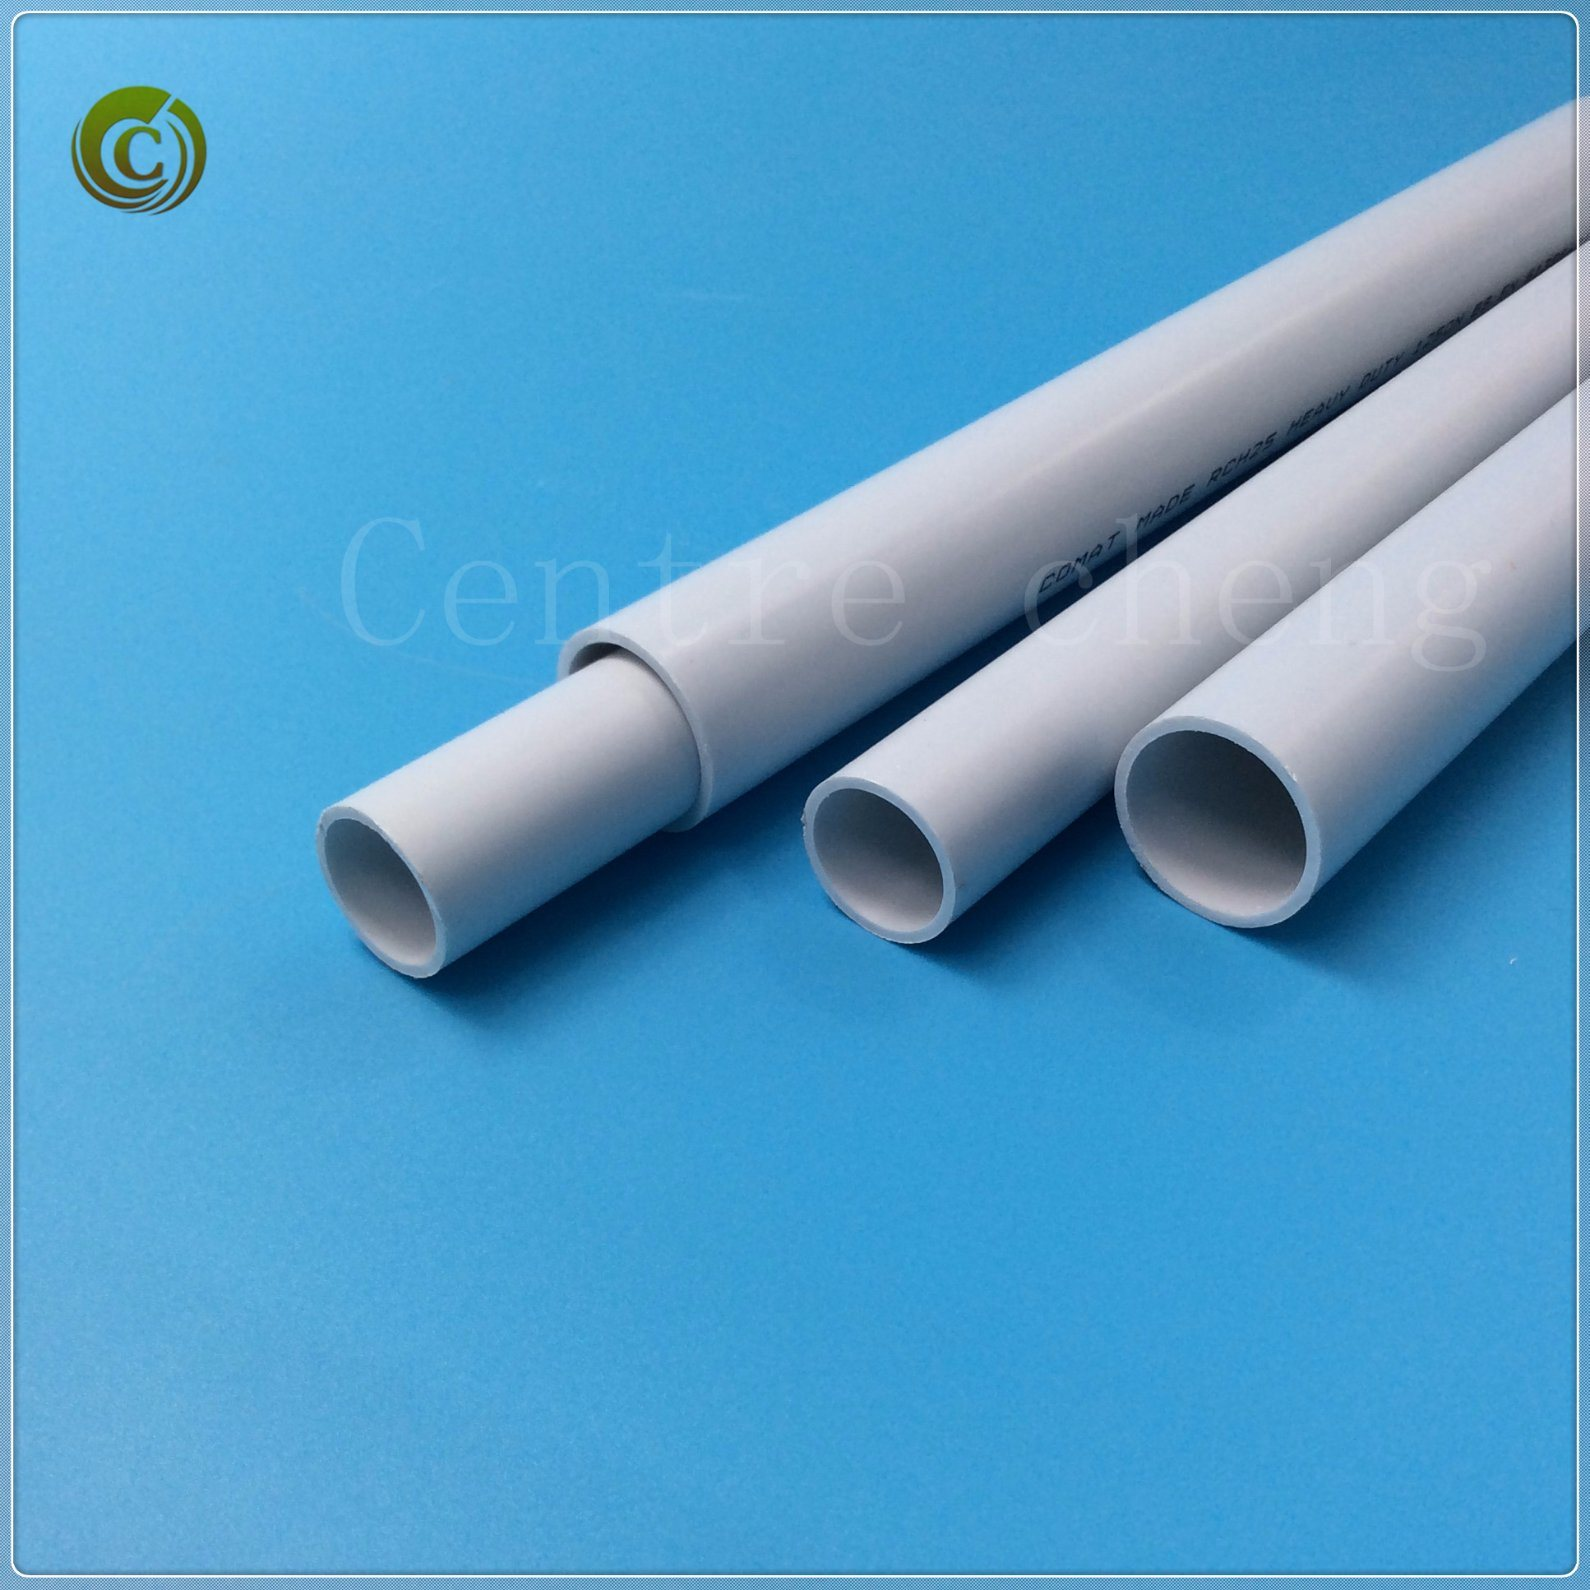 Using Plastic Conduit For Wiring Wire Center Guide China 2018 32mm Pvc Pipe Electrical Piping Rh Centrecheng En Made In Com Outdoor